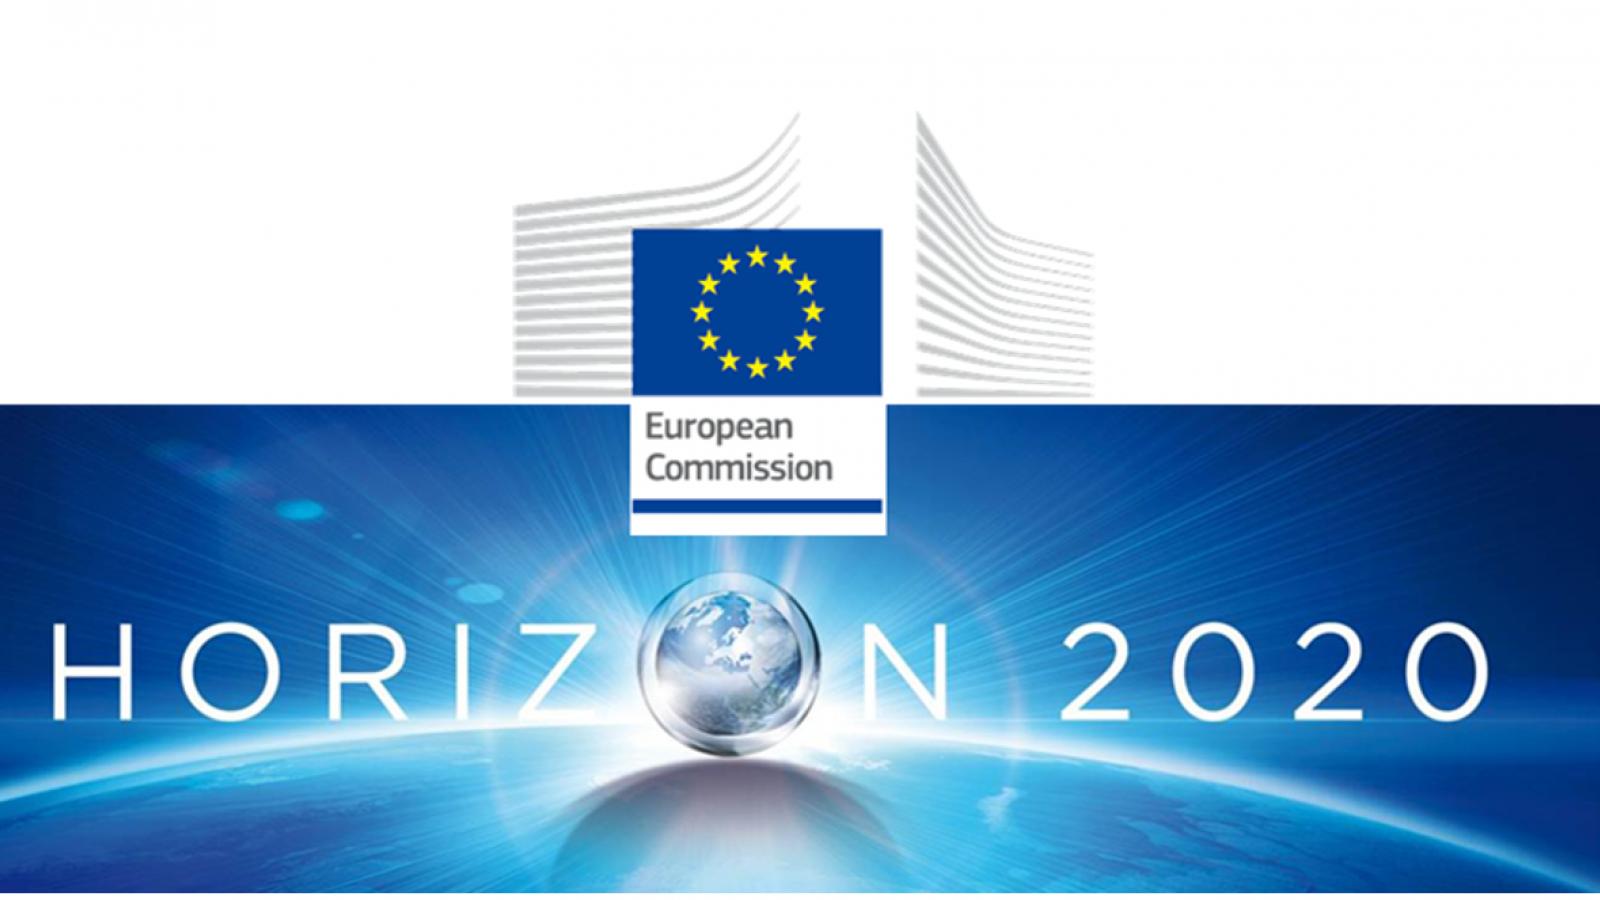 H2020 calls for proposals on Nanotechnologies, Advanced Materials, Biotechnology and Advanced Manufacturing and Processing